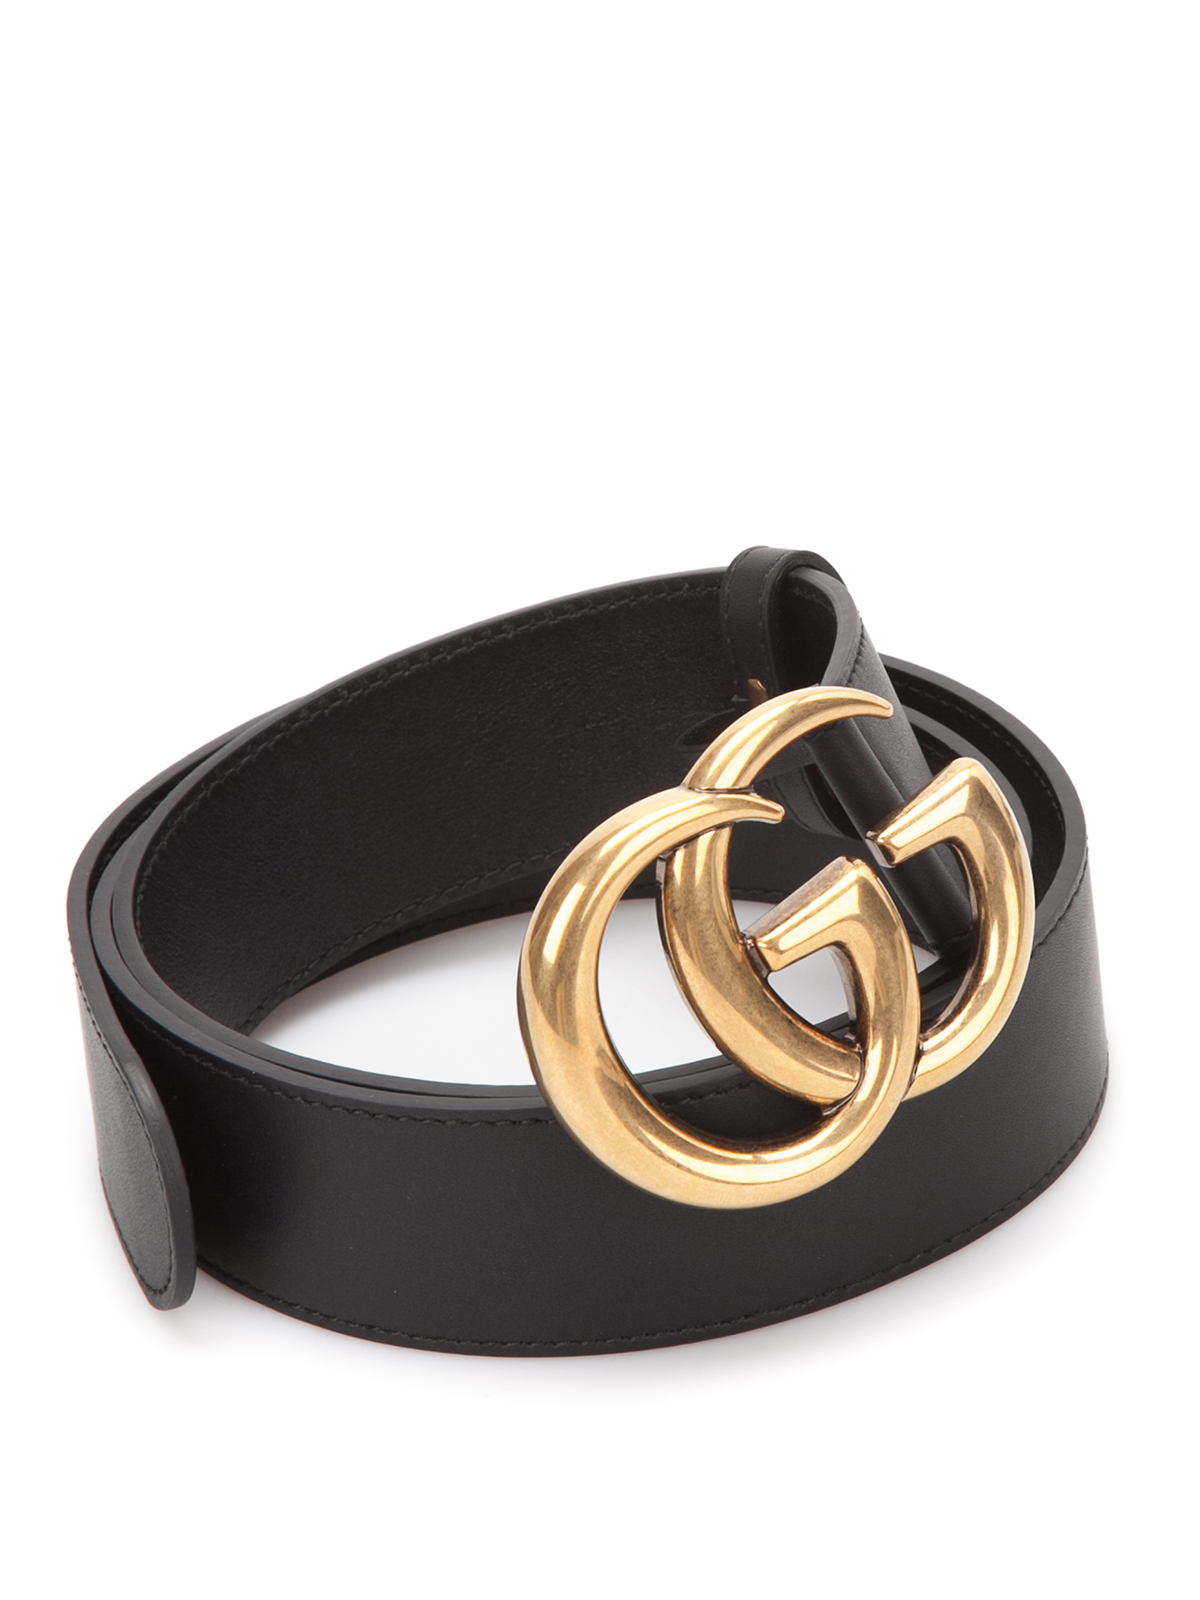 leather belt with double g buckle by gucci belts ikrix